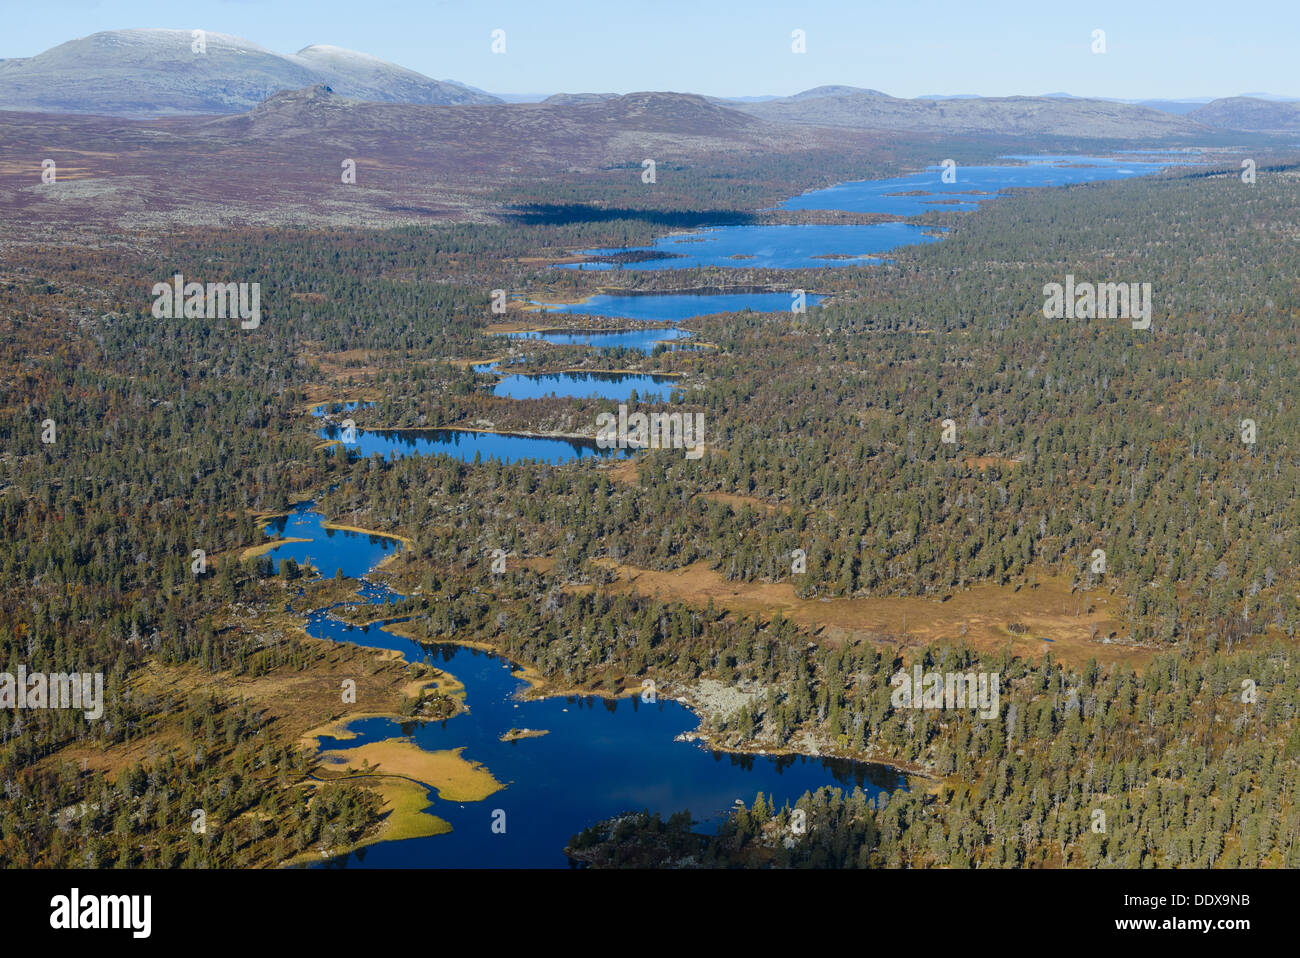 Aerial view of forests and lakes, Hävlingen, Dalarna, Sweden - Stock Image